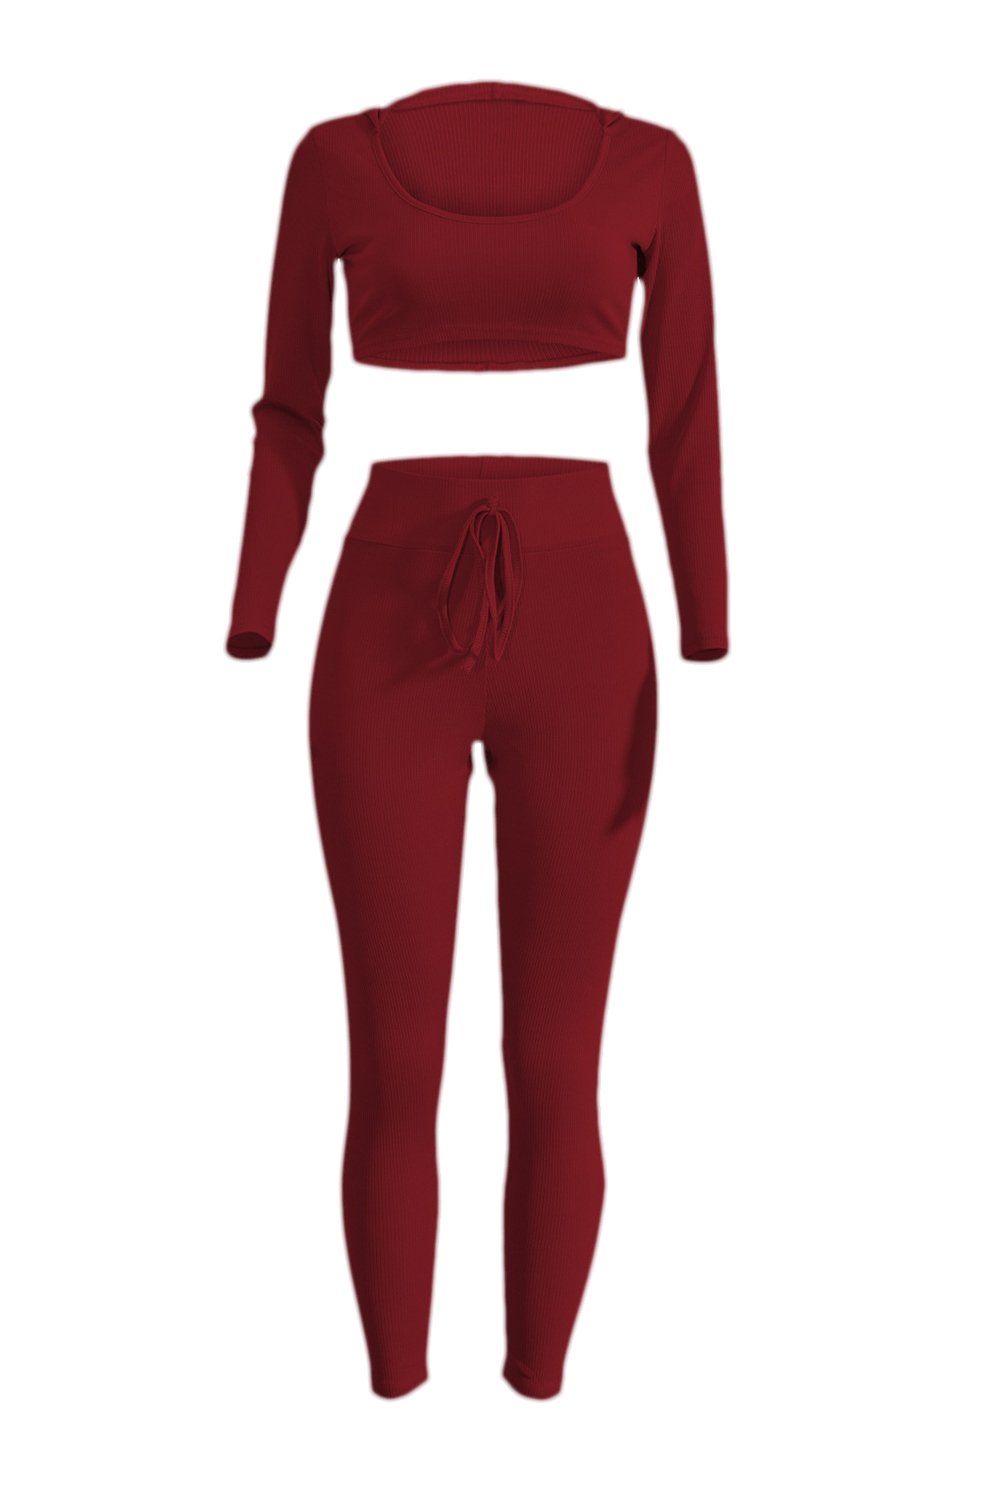 YACUN Women's 2 Pieces Sets Long Sleeve Crop Tops Tight Pants Suits CAQMfs17072513